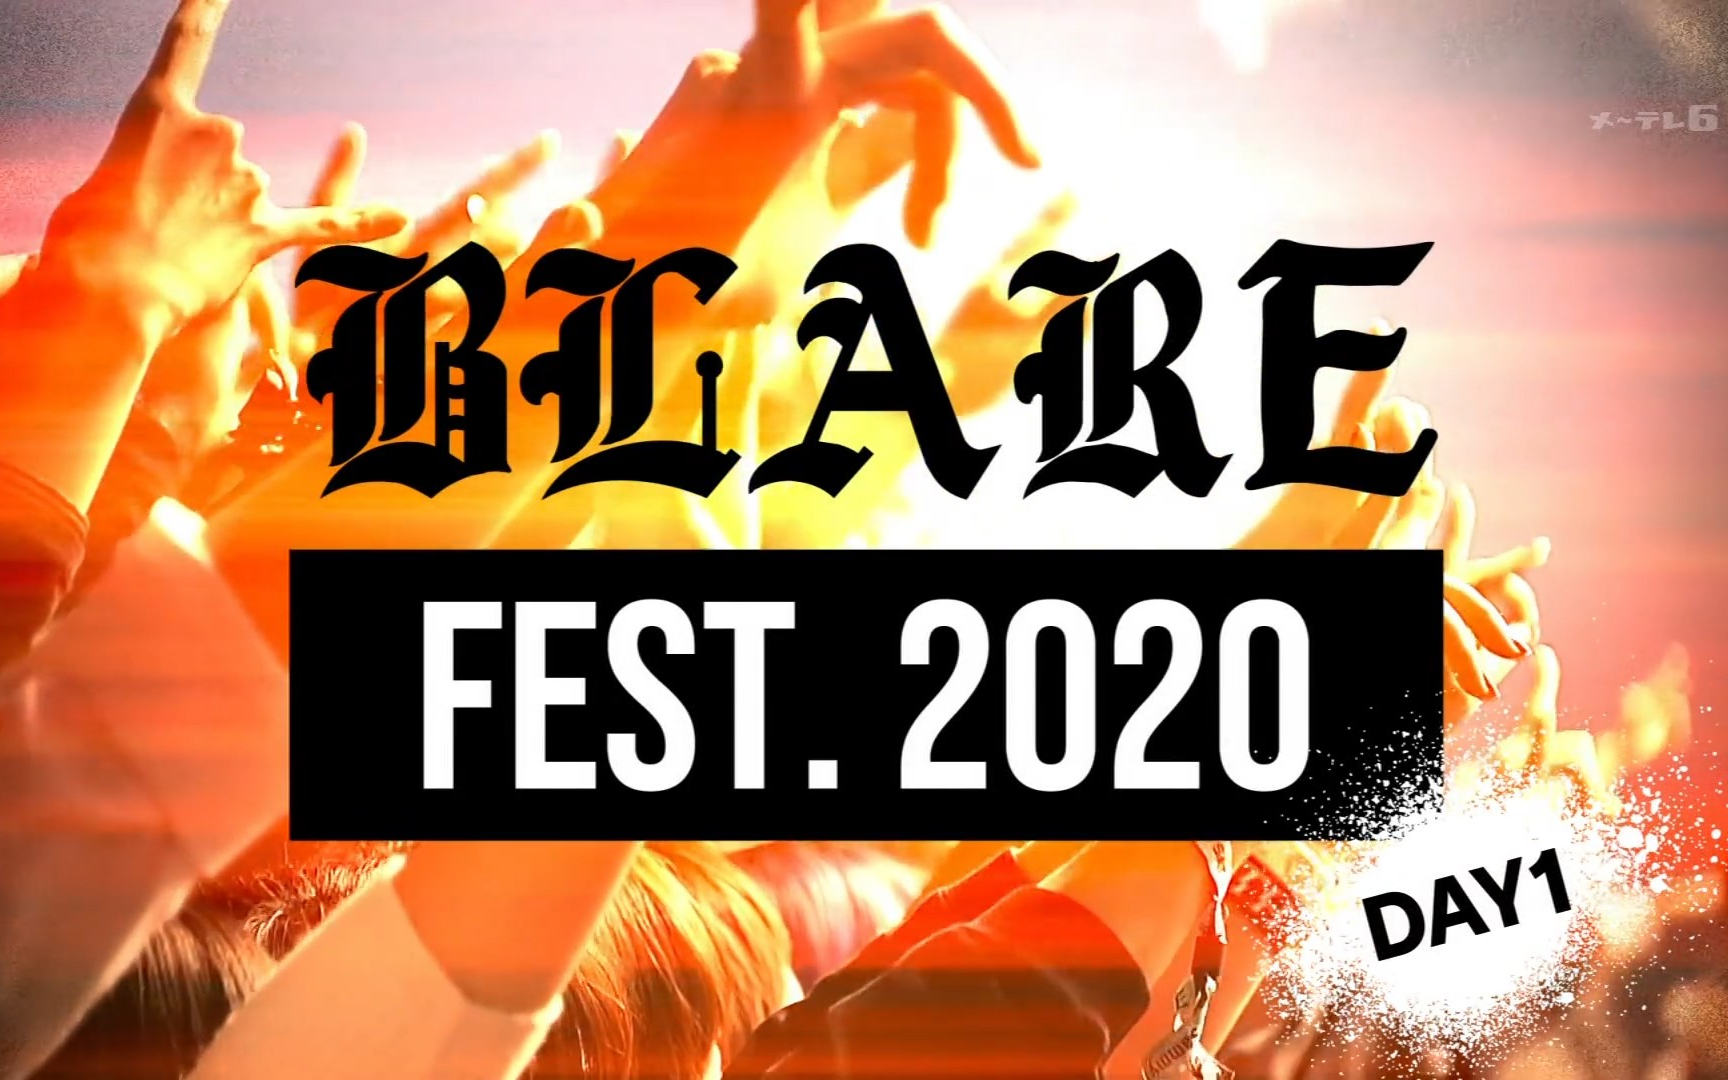 【coldrain】BLARE FEST. 2020 DAY ONE BomberE_SPECIAL